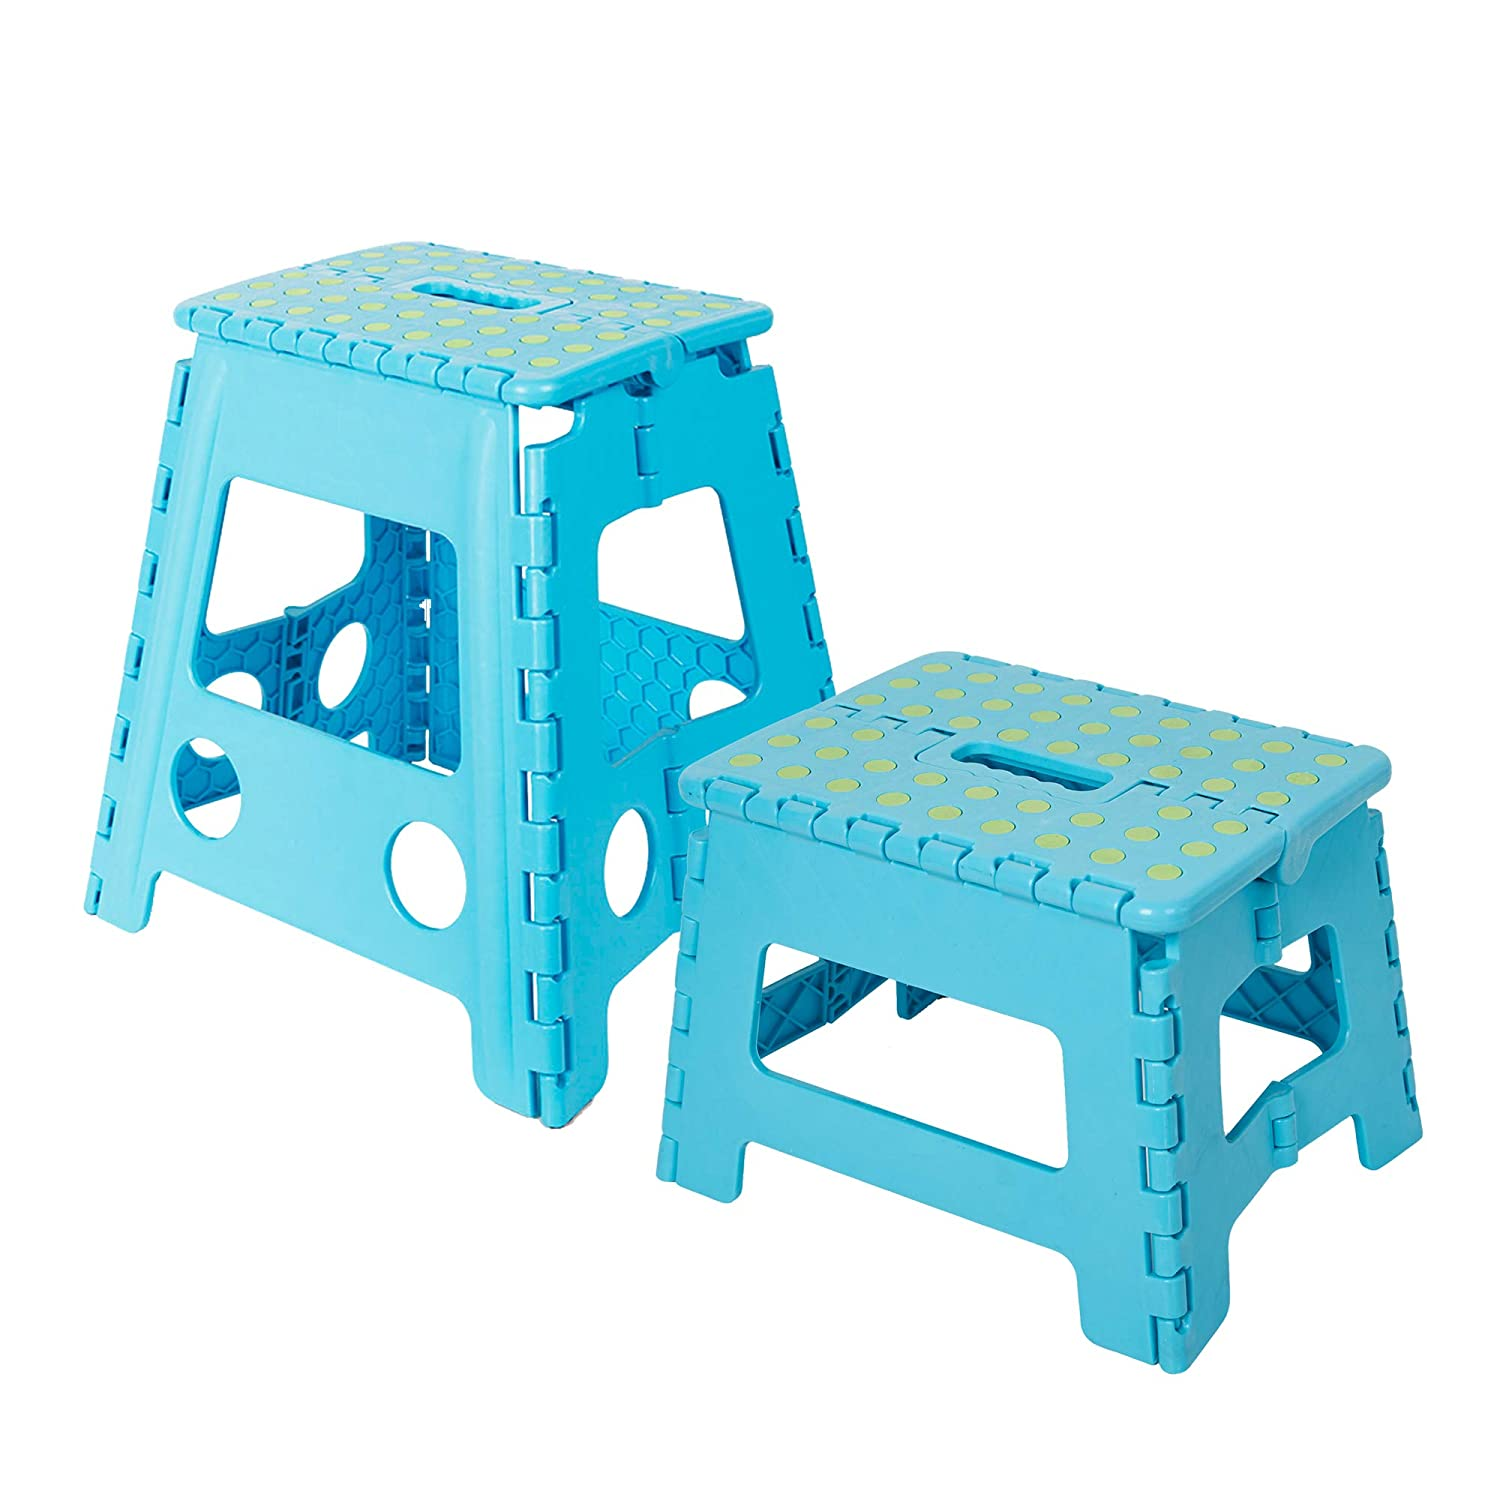 Dporticus Folding Step Stool 16 inches + 9 inches Super Strong Foldable Stool for Kids & Adults, Kitchen Garden Bathroom(Purple 2PC)